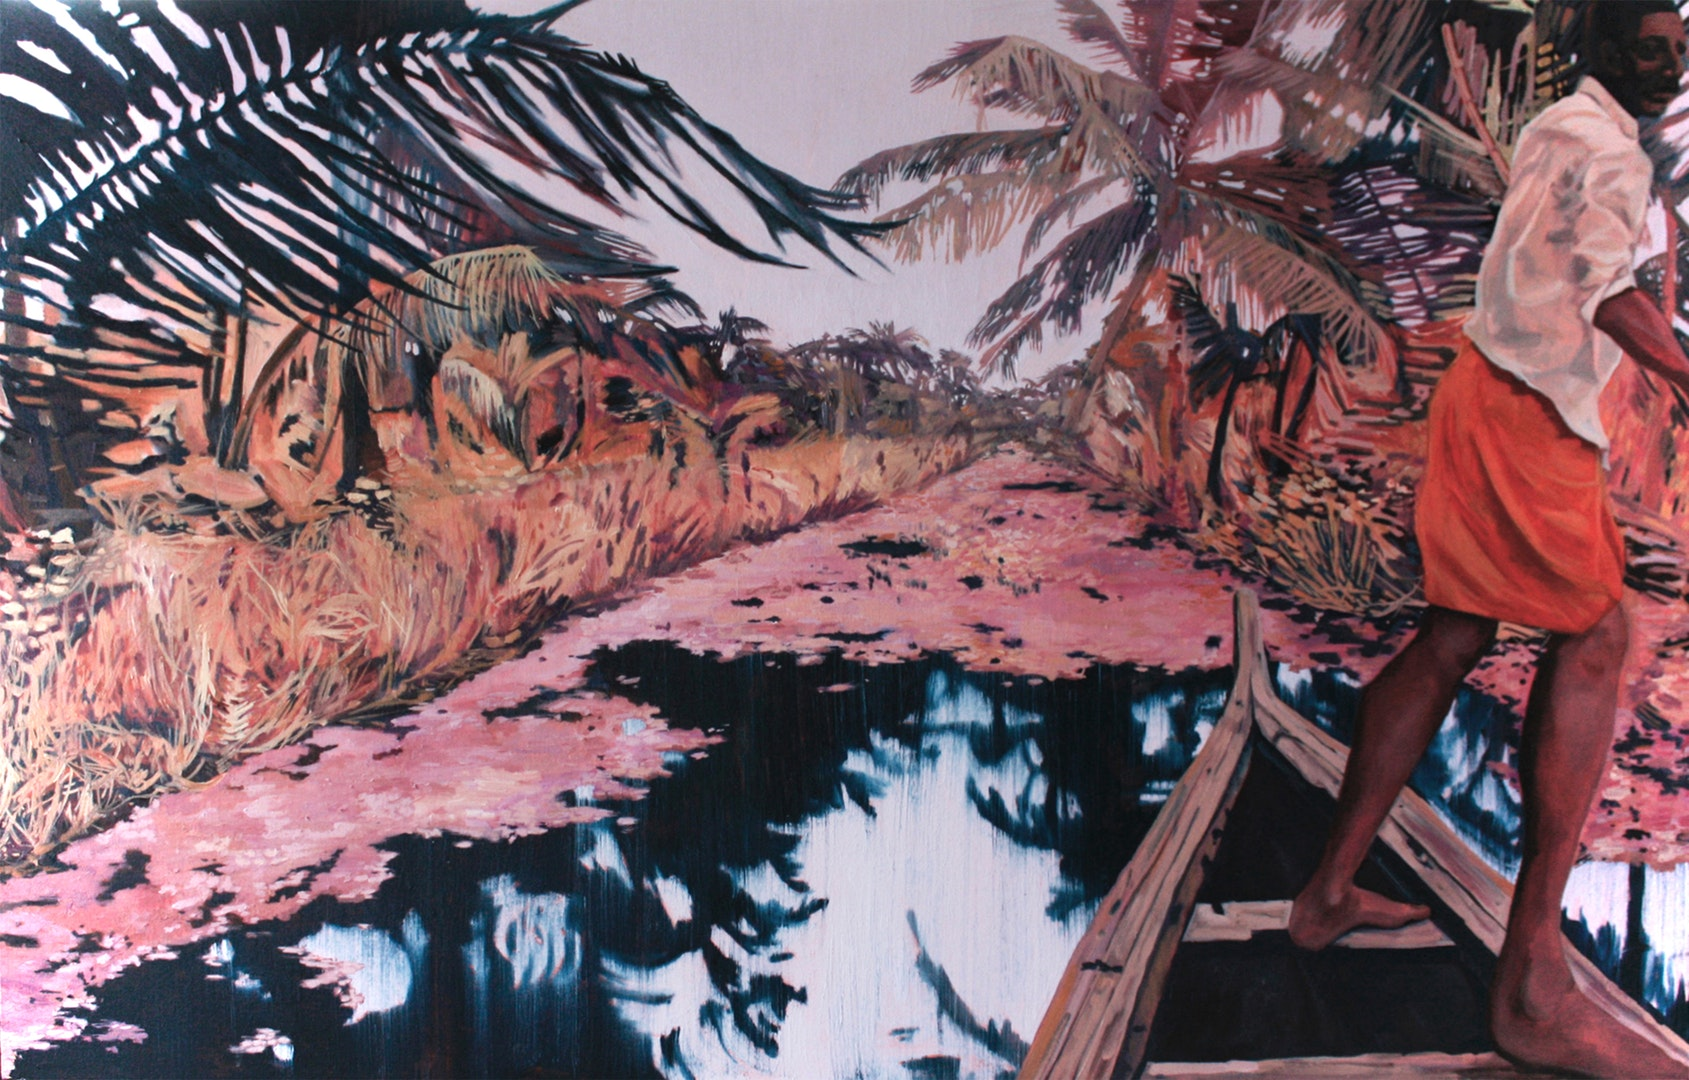 Claire Cansick  Backwater Dream  Oil on canvas, 76 x 123 x 4 cm  http://clairecansick.com